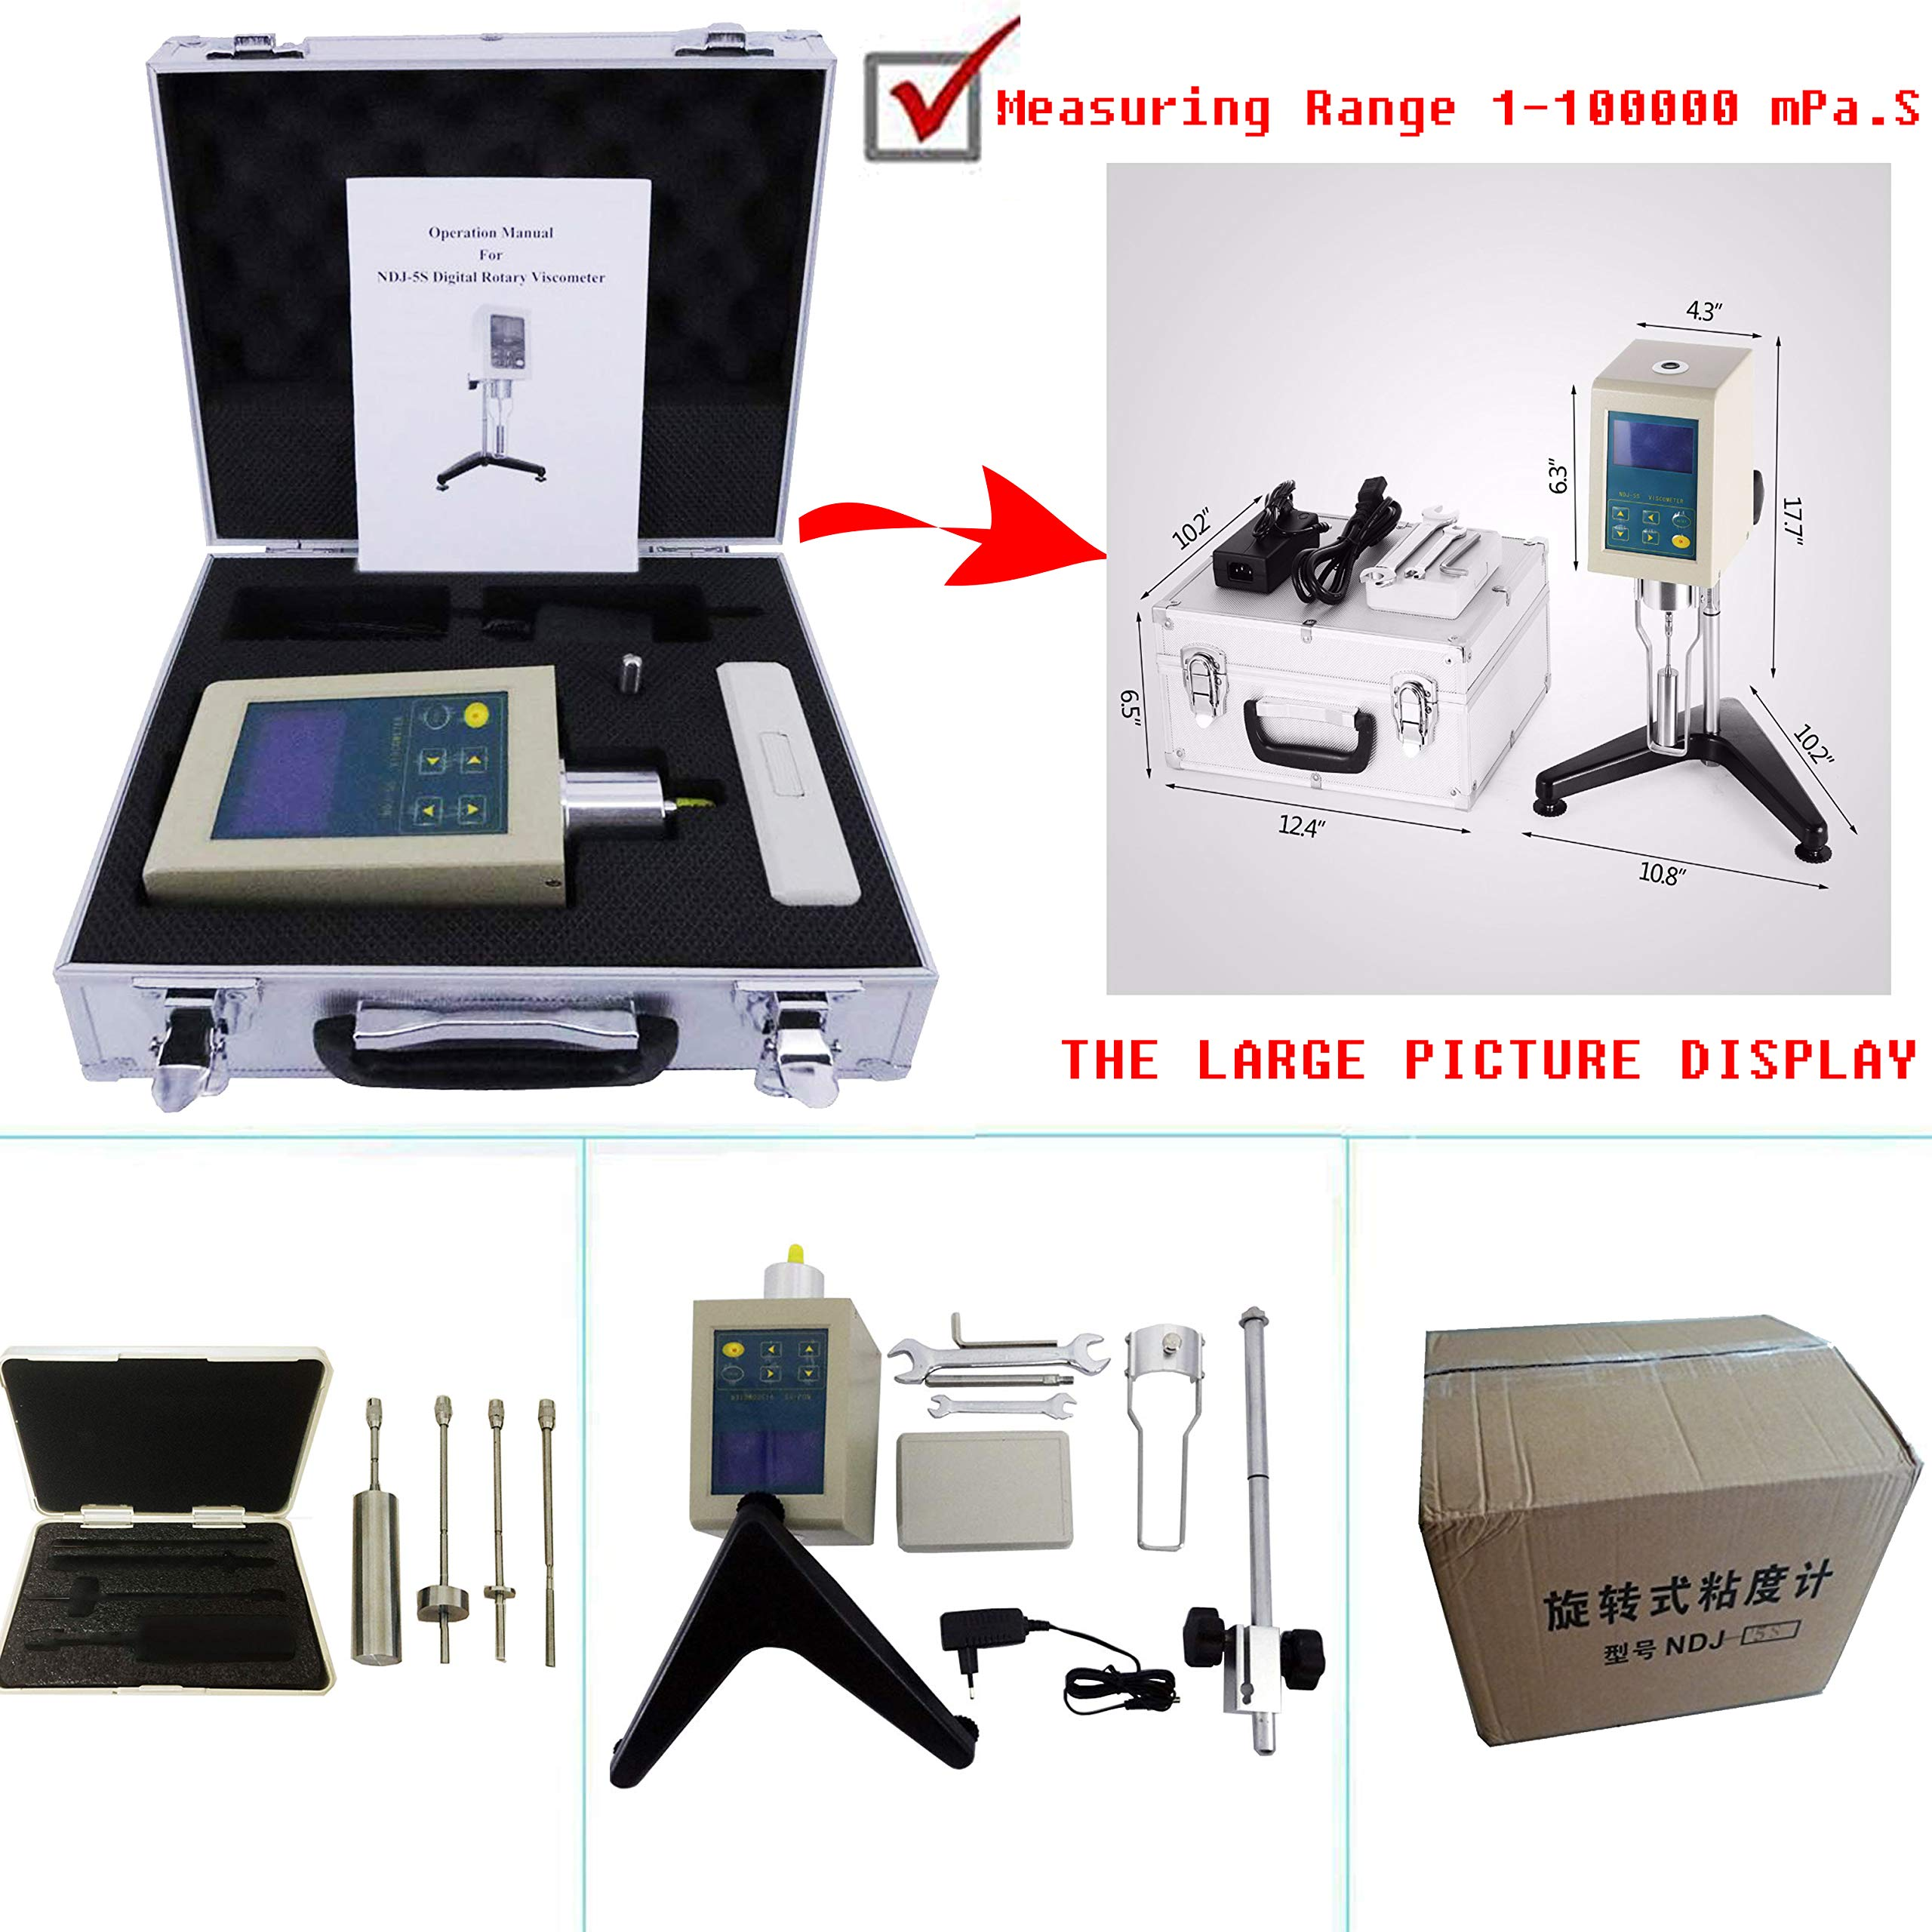 VTSYIQI Lab Viscometer Viscosity Tester Meter NDJ-5S Measuring Range 1-100000 mPa.S with 4 Rotors by VTSYIQI